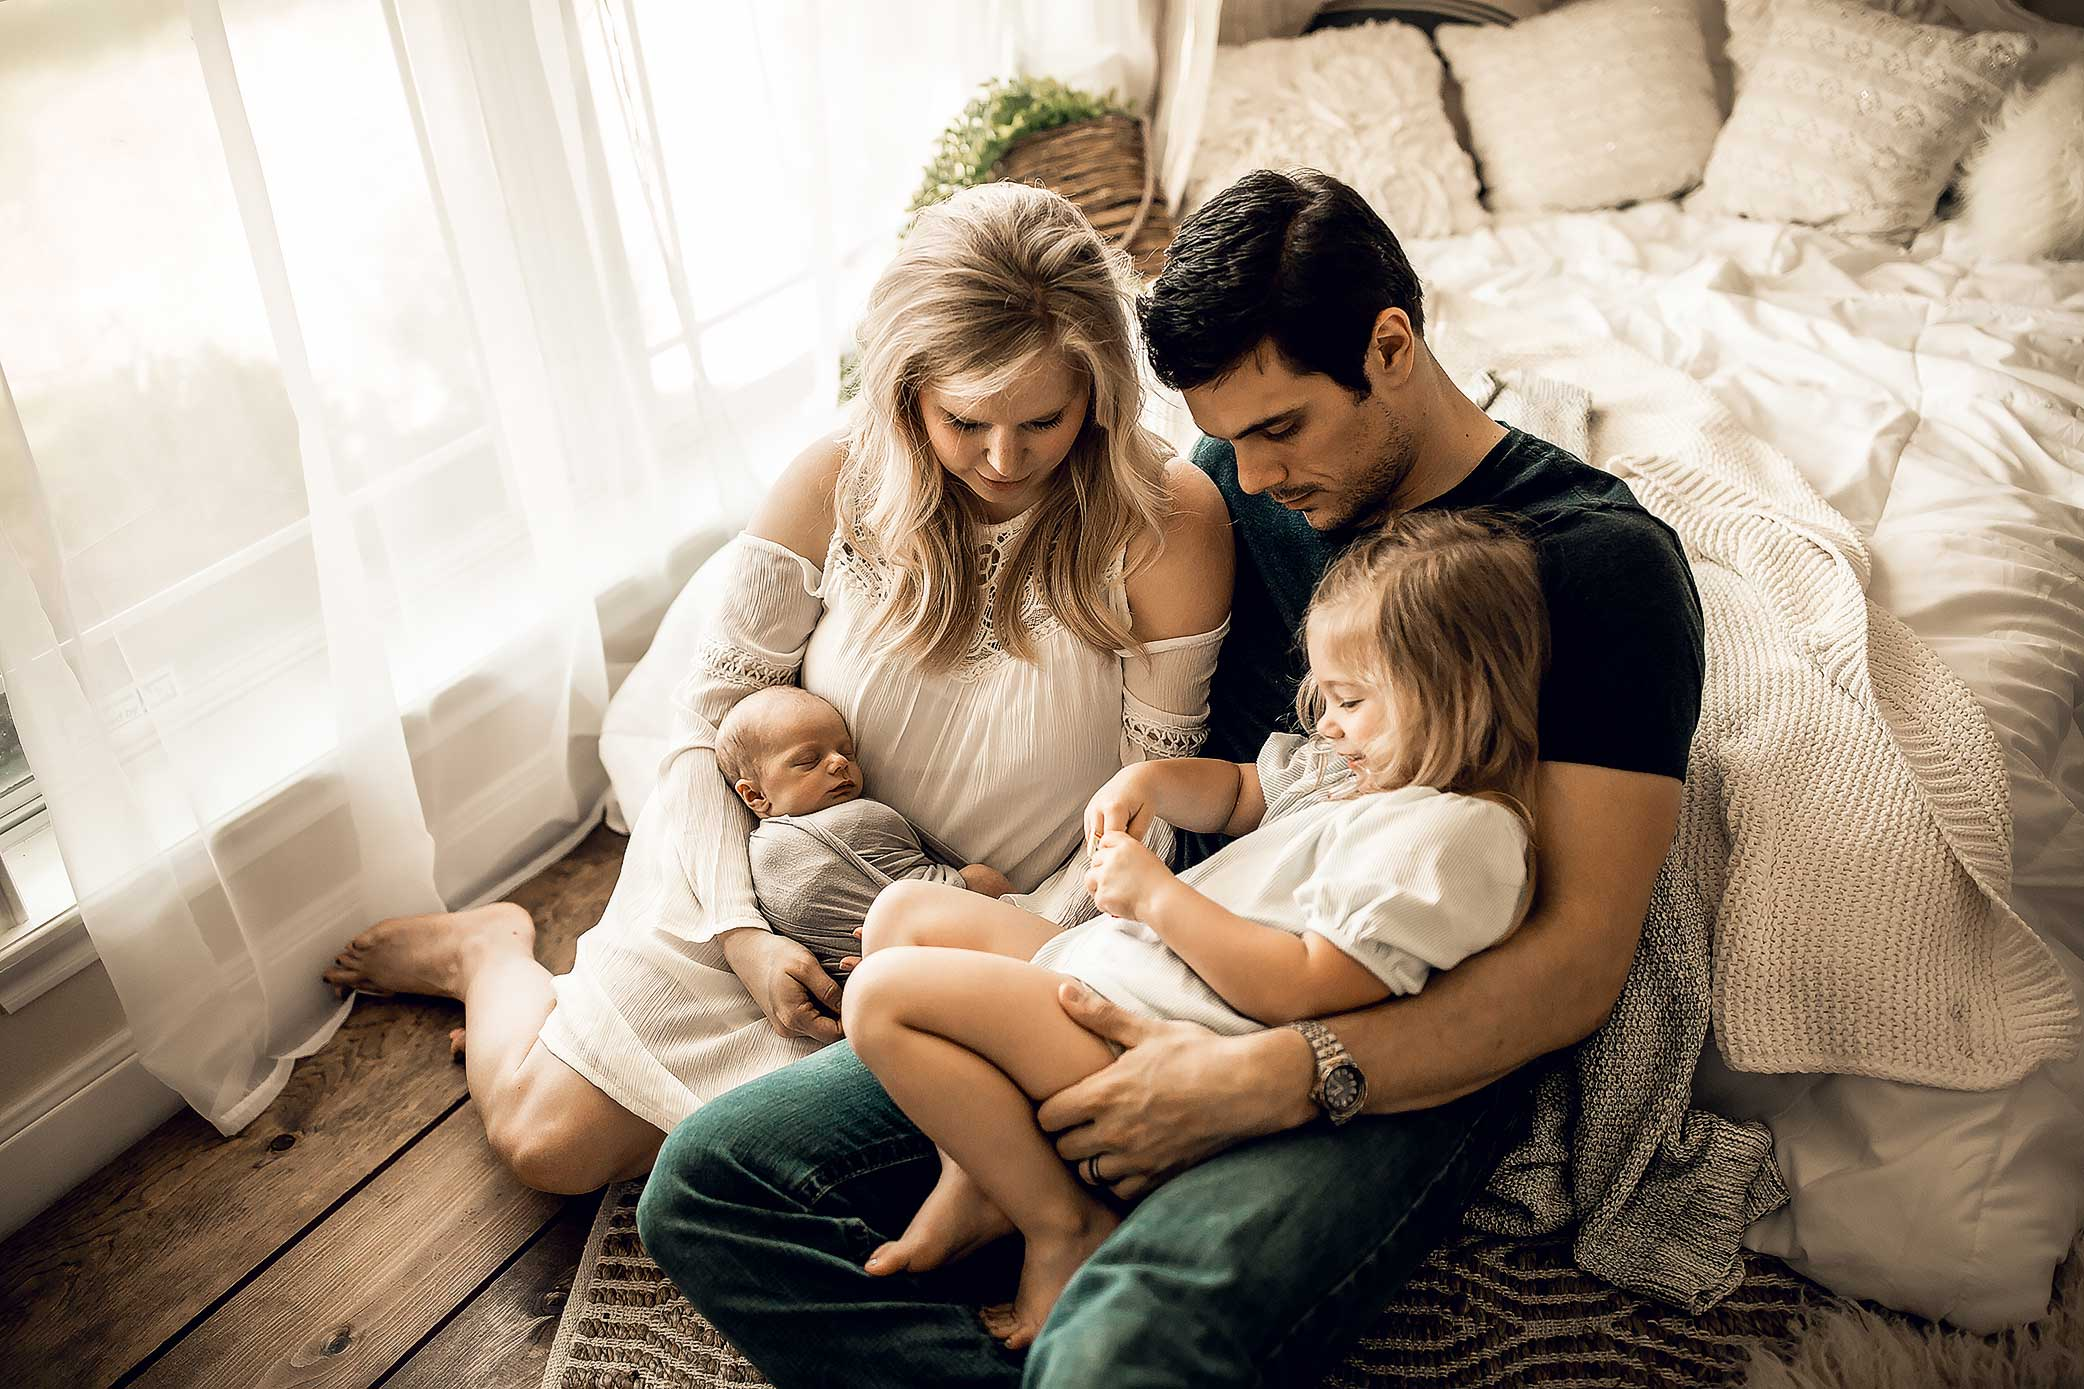 shelby-schiller-photography-lifestyle-newborn-family-curled-up-on-wooden-floor.jpg